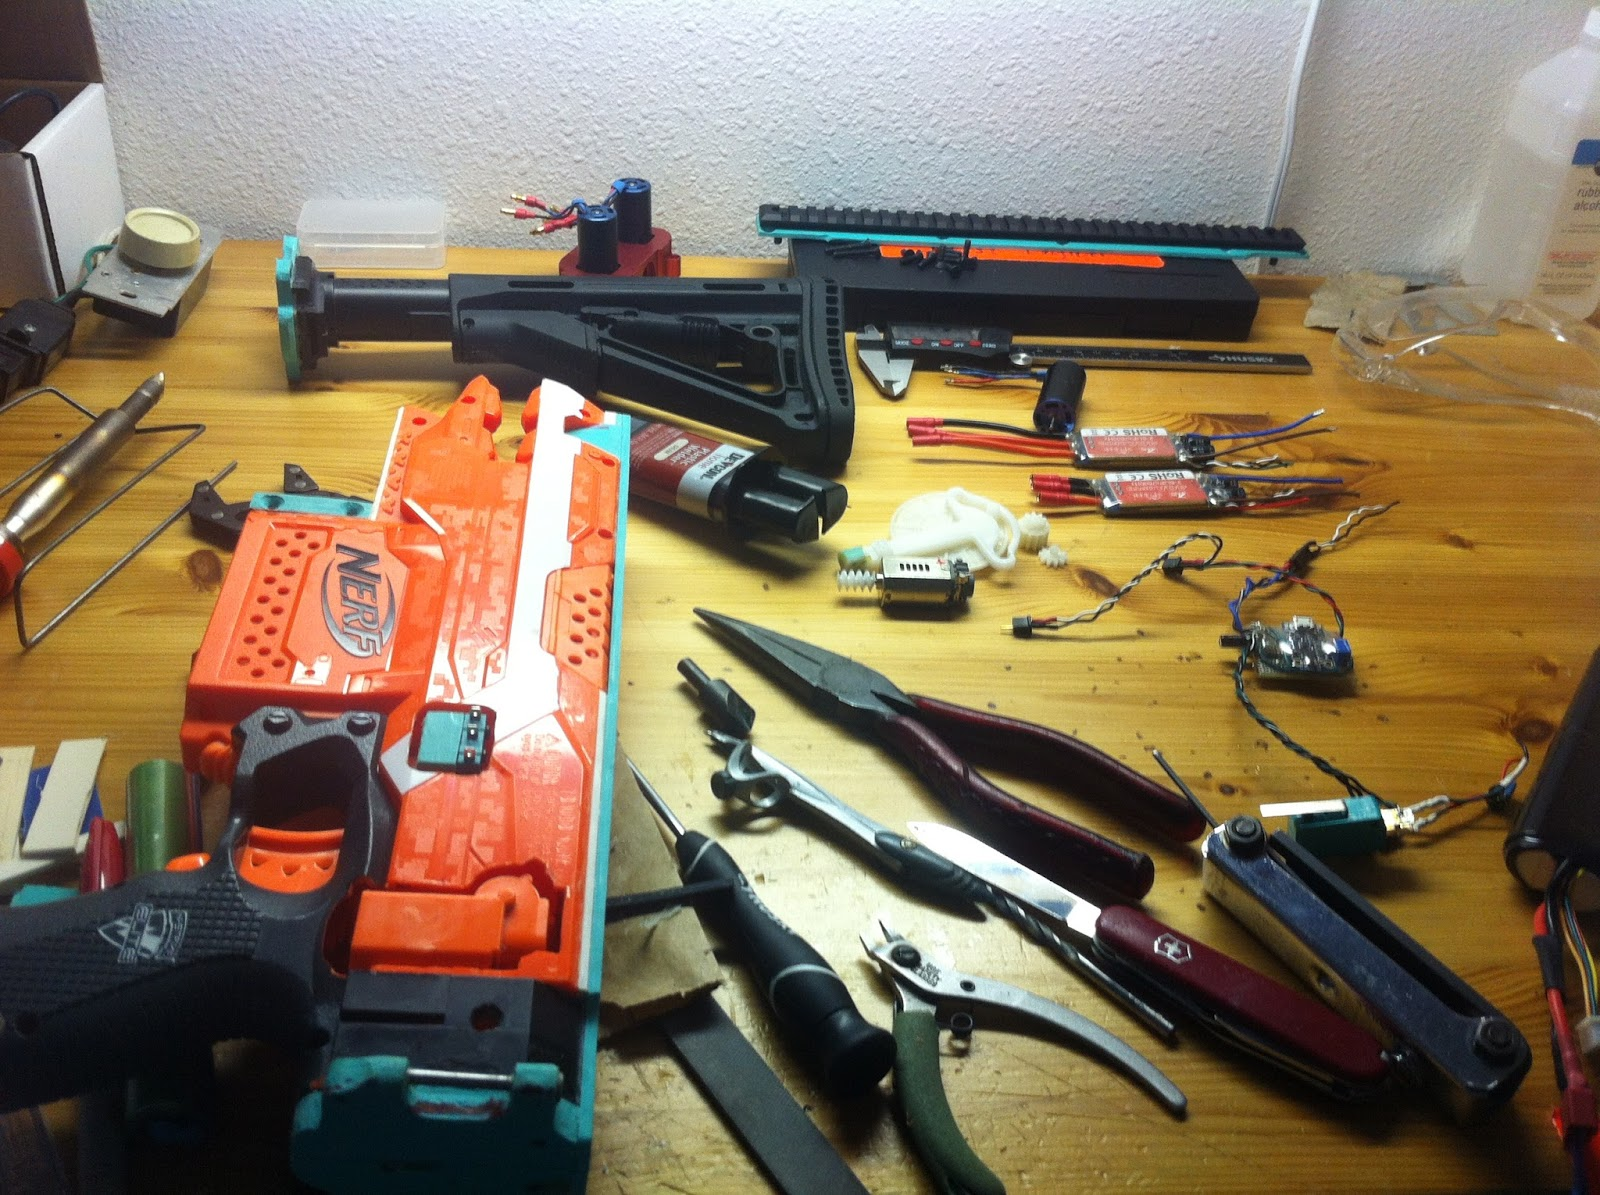 The Dart Zone Brushless Inrunner Ar Cage Continued And Project T17 Wire Harness Assembly Workbench Perhaps You See Sling Mount Built Into Stock Base Now As Well Finished With Its Mating Plate To Bolt Up On That Flat Surface